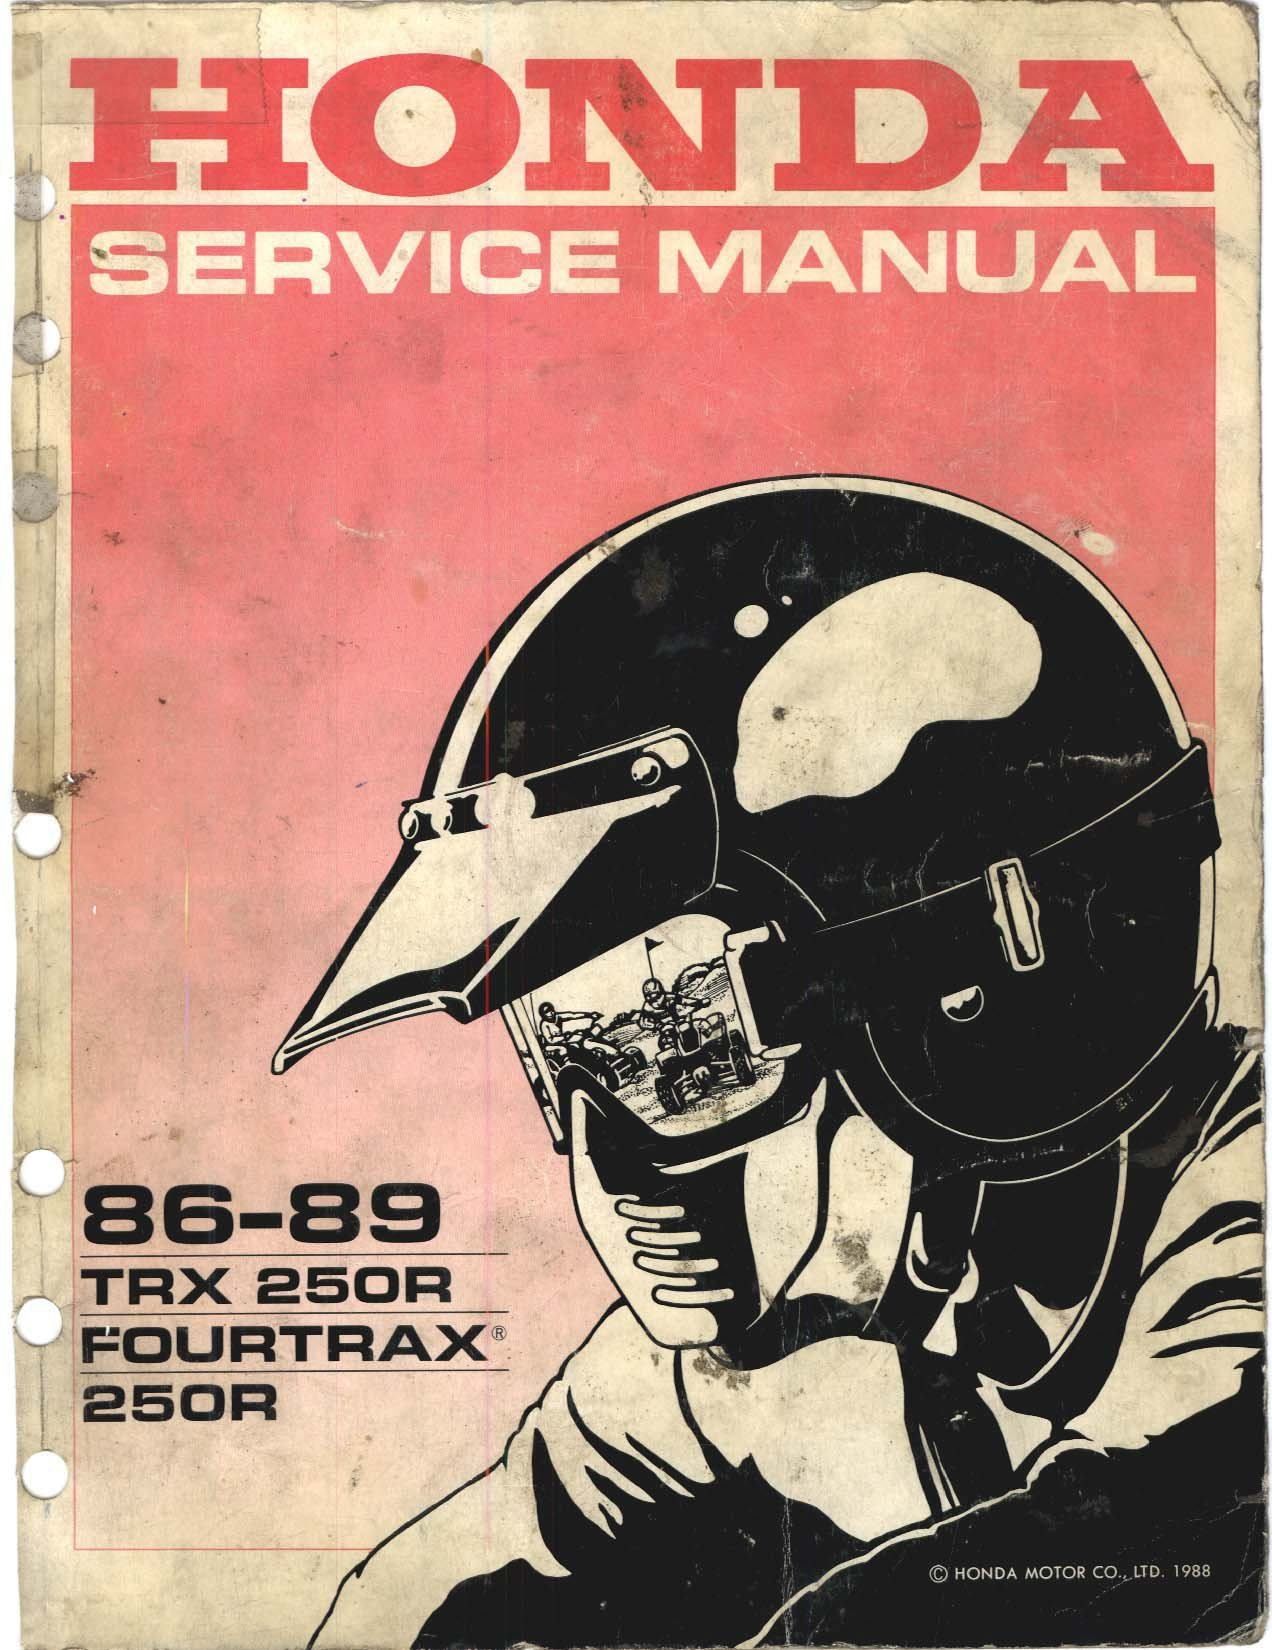 1986-1989 Honda TRX250R Service Manual